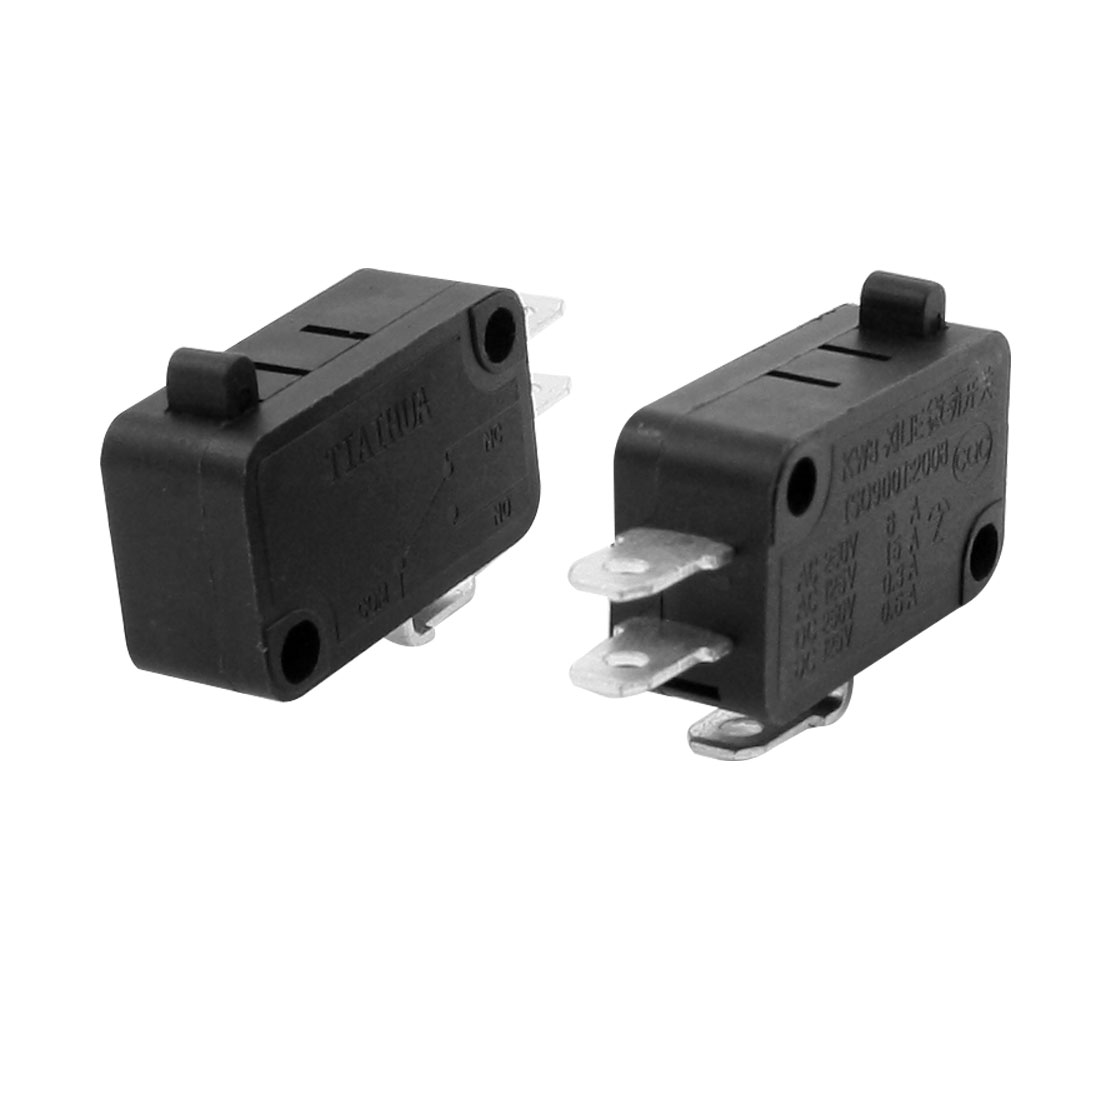 AC 250V/6A 125V/15A Srew Connector Actuator Micro Limit Switch Black 2 Pieces